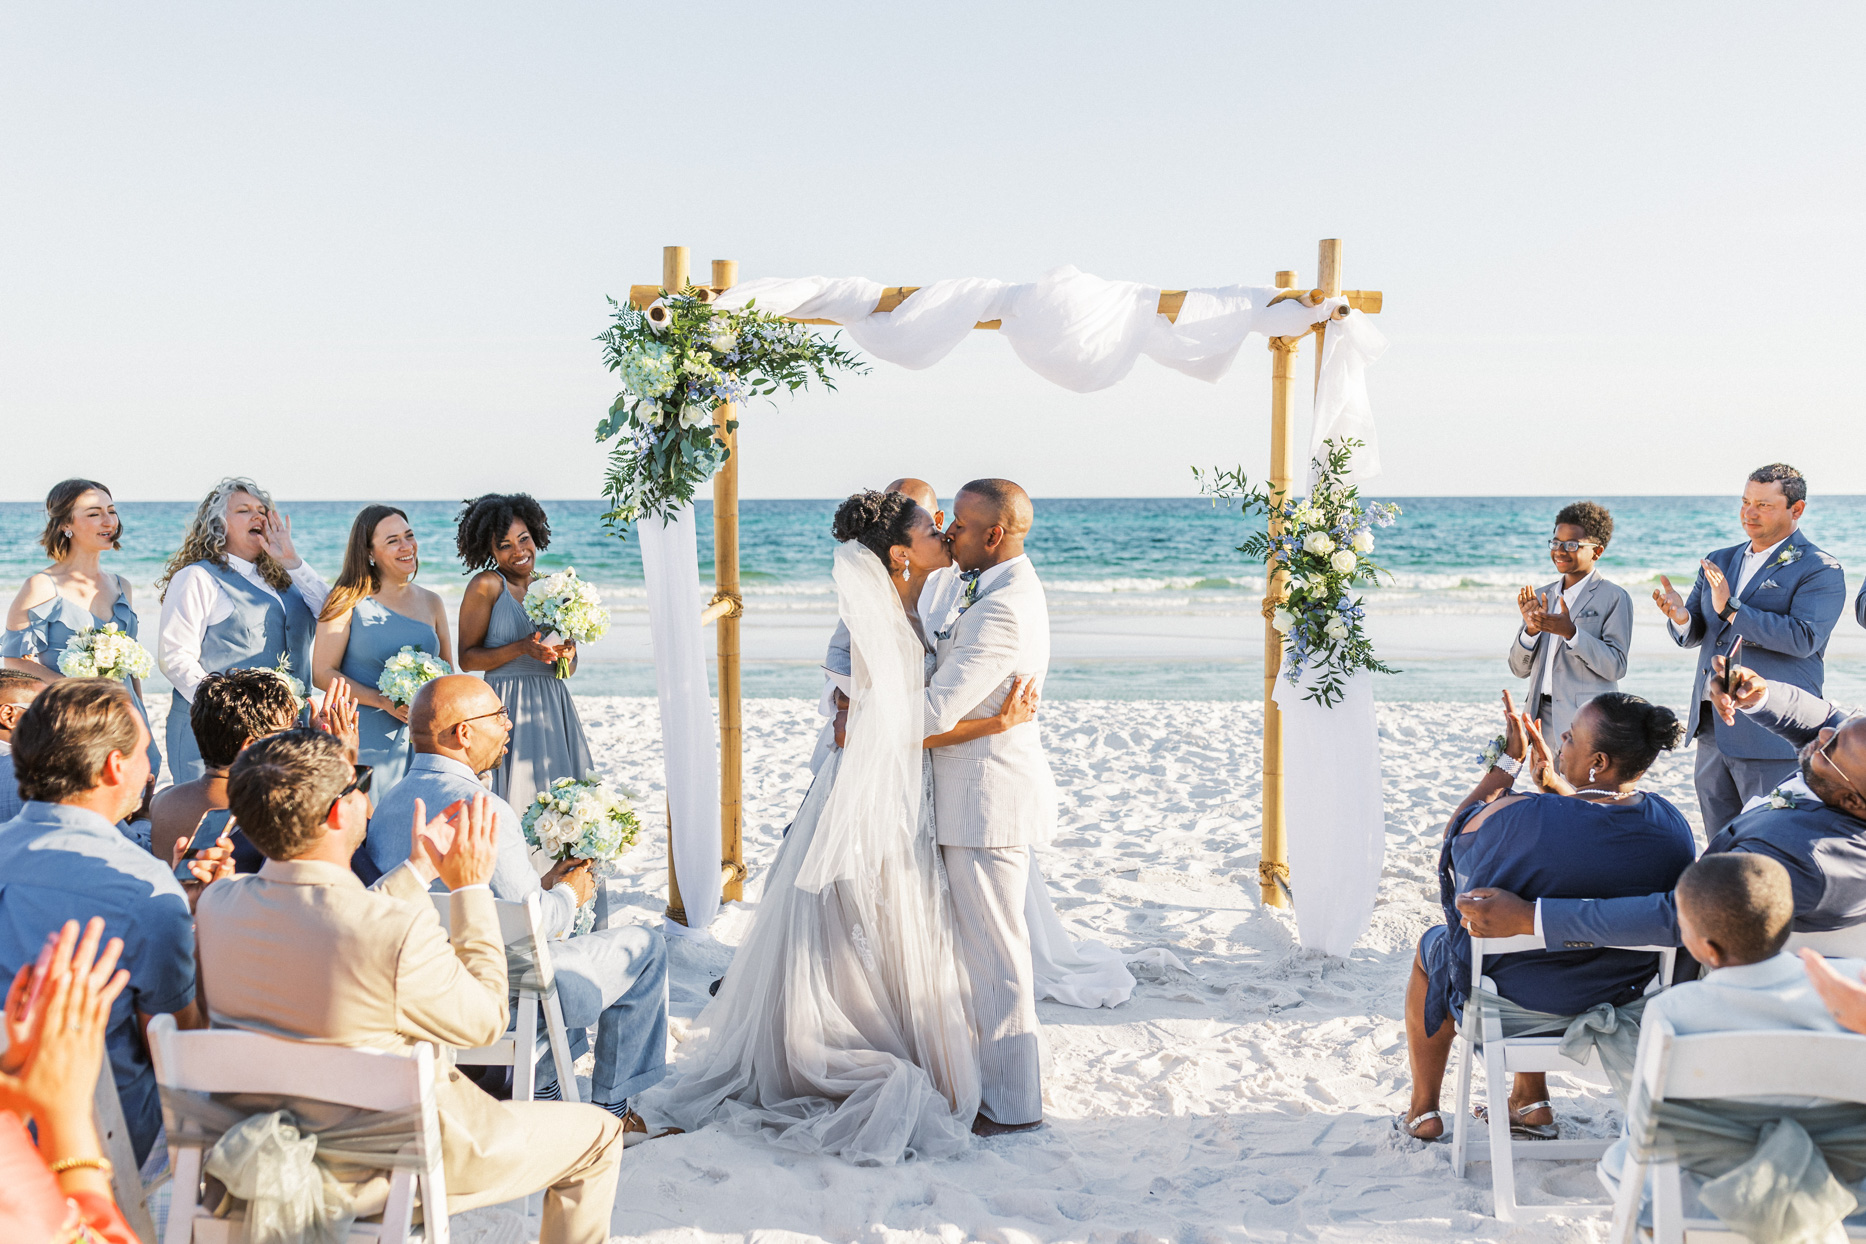 couple kissing at beach wedding ceremony